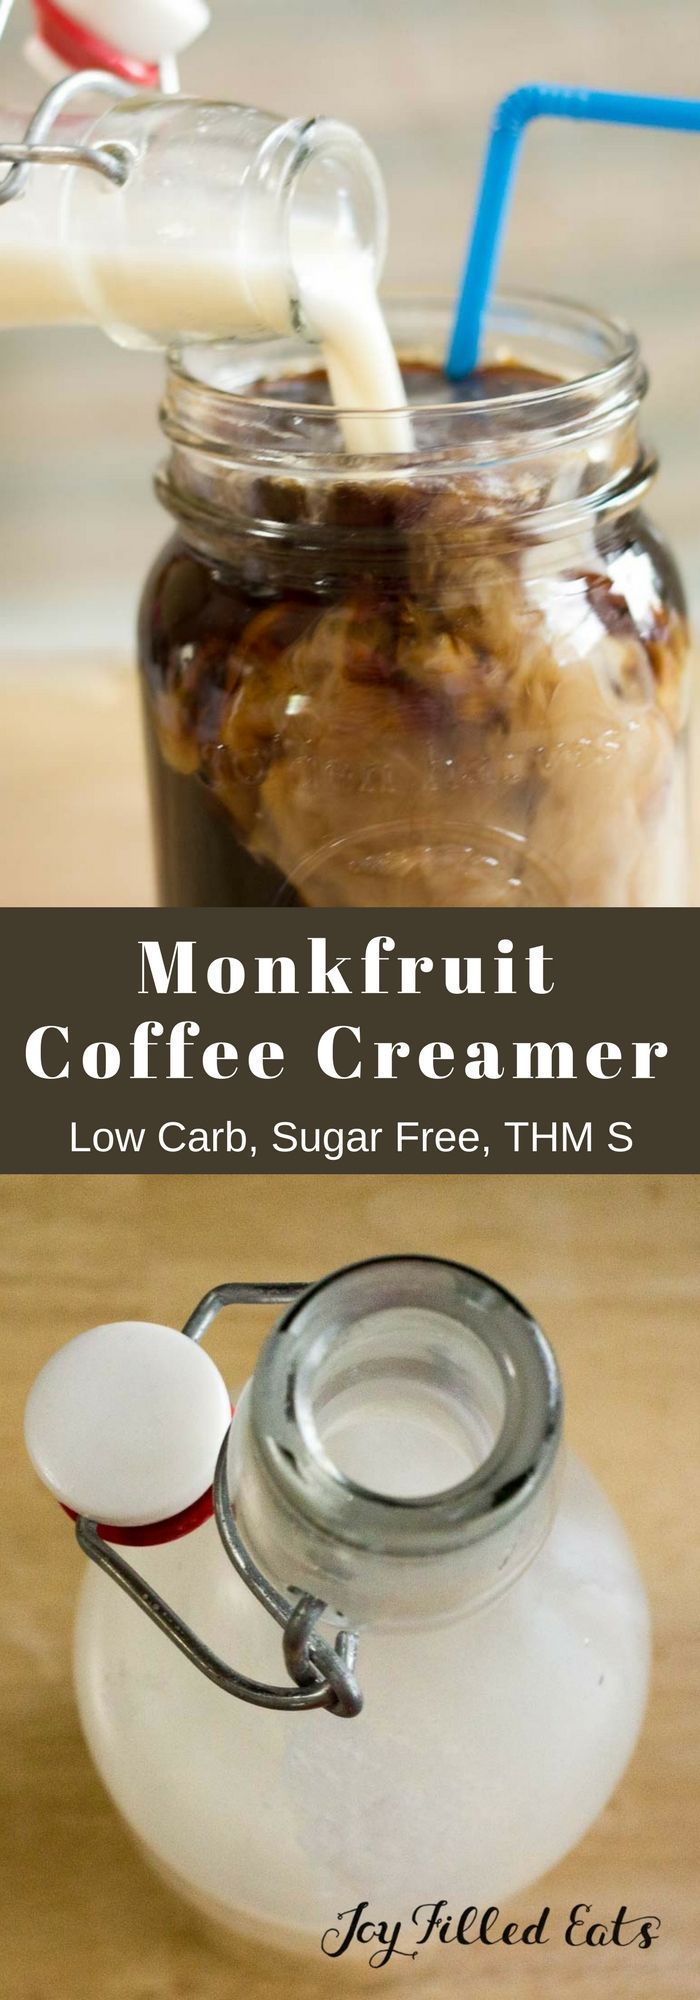 Monkfruit Coffee Creamer - Low Carb, Sugar Free, THM S. This easy Monkfruit Coffee Creamer is perfect for both hot or iced coffee. You can easily adjust the sweetness to your taste buds and add extracts to customize.